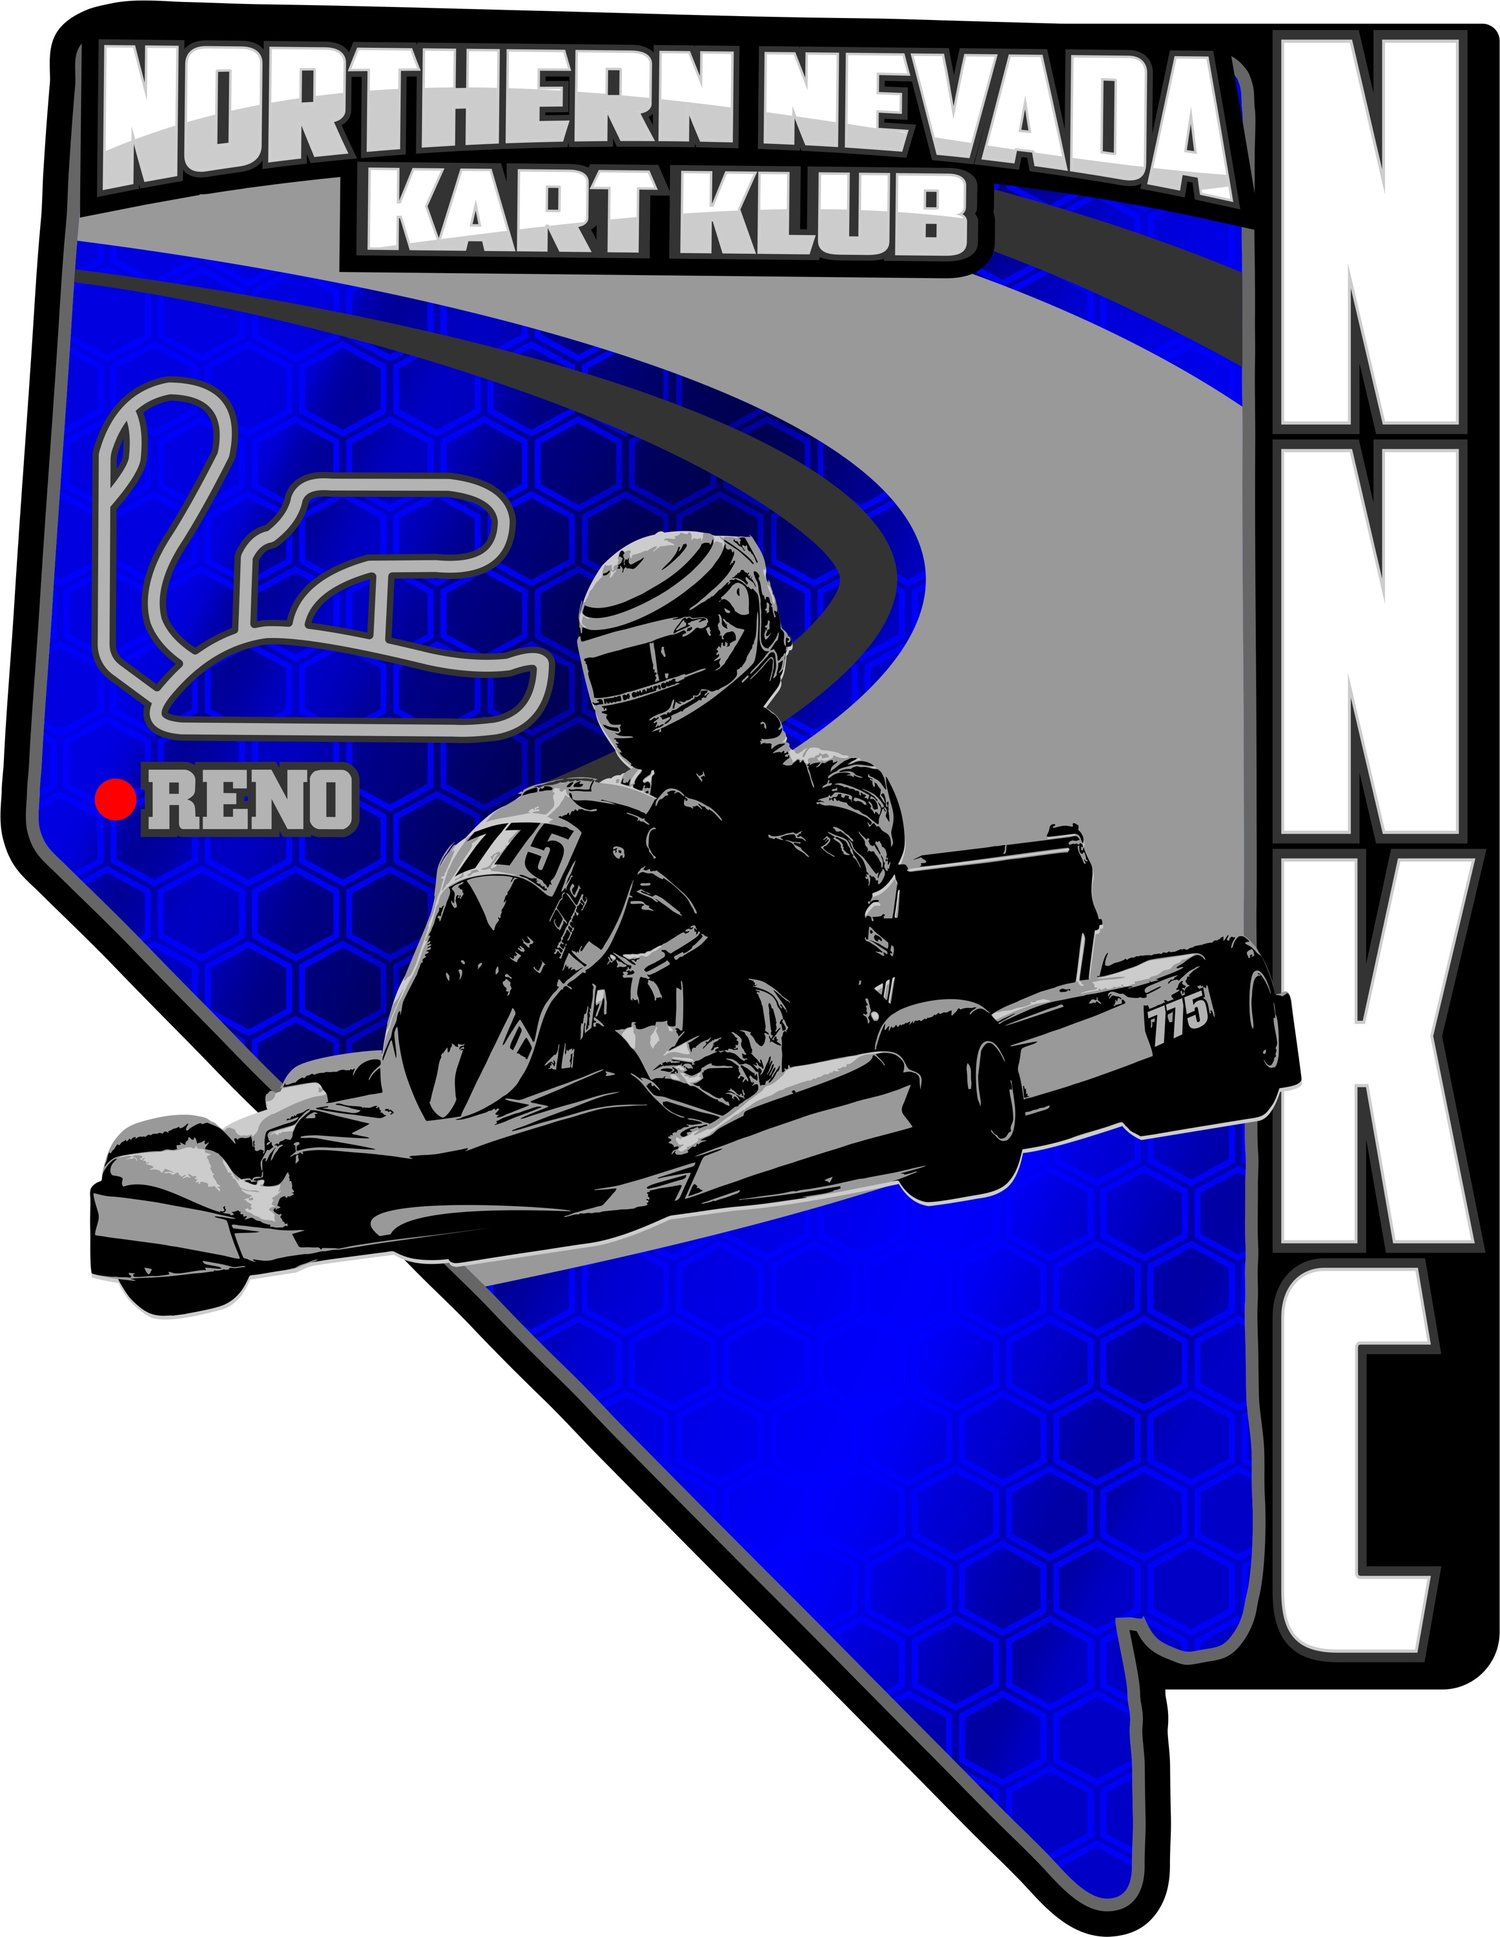 Nothern Nevada Kart Club